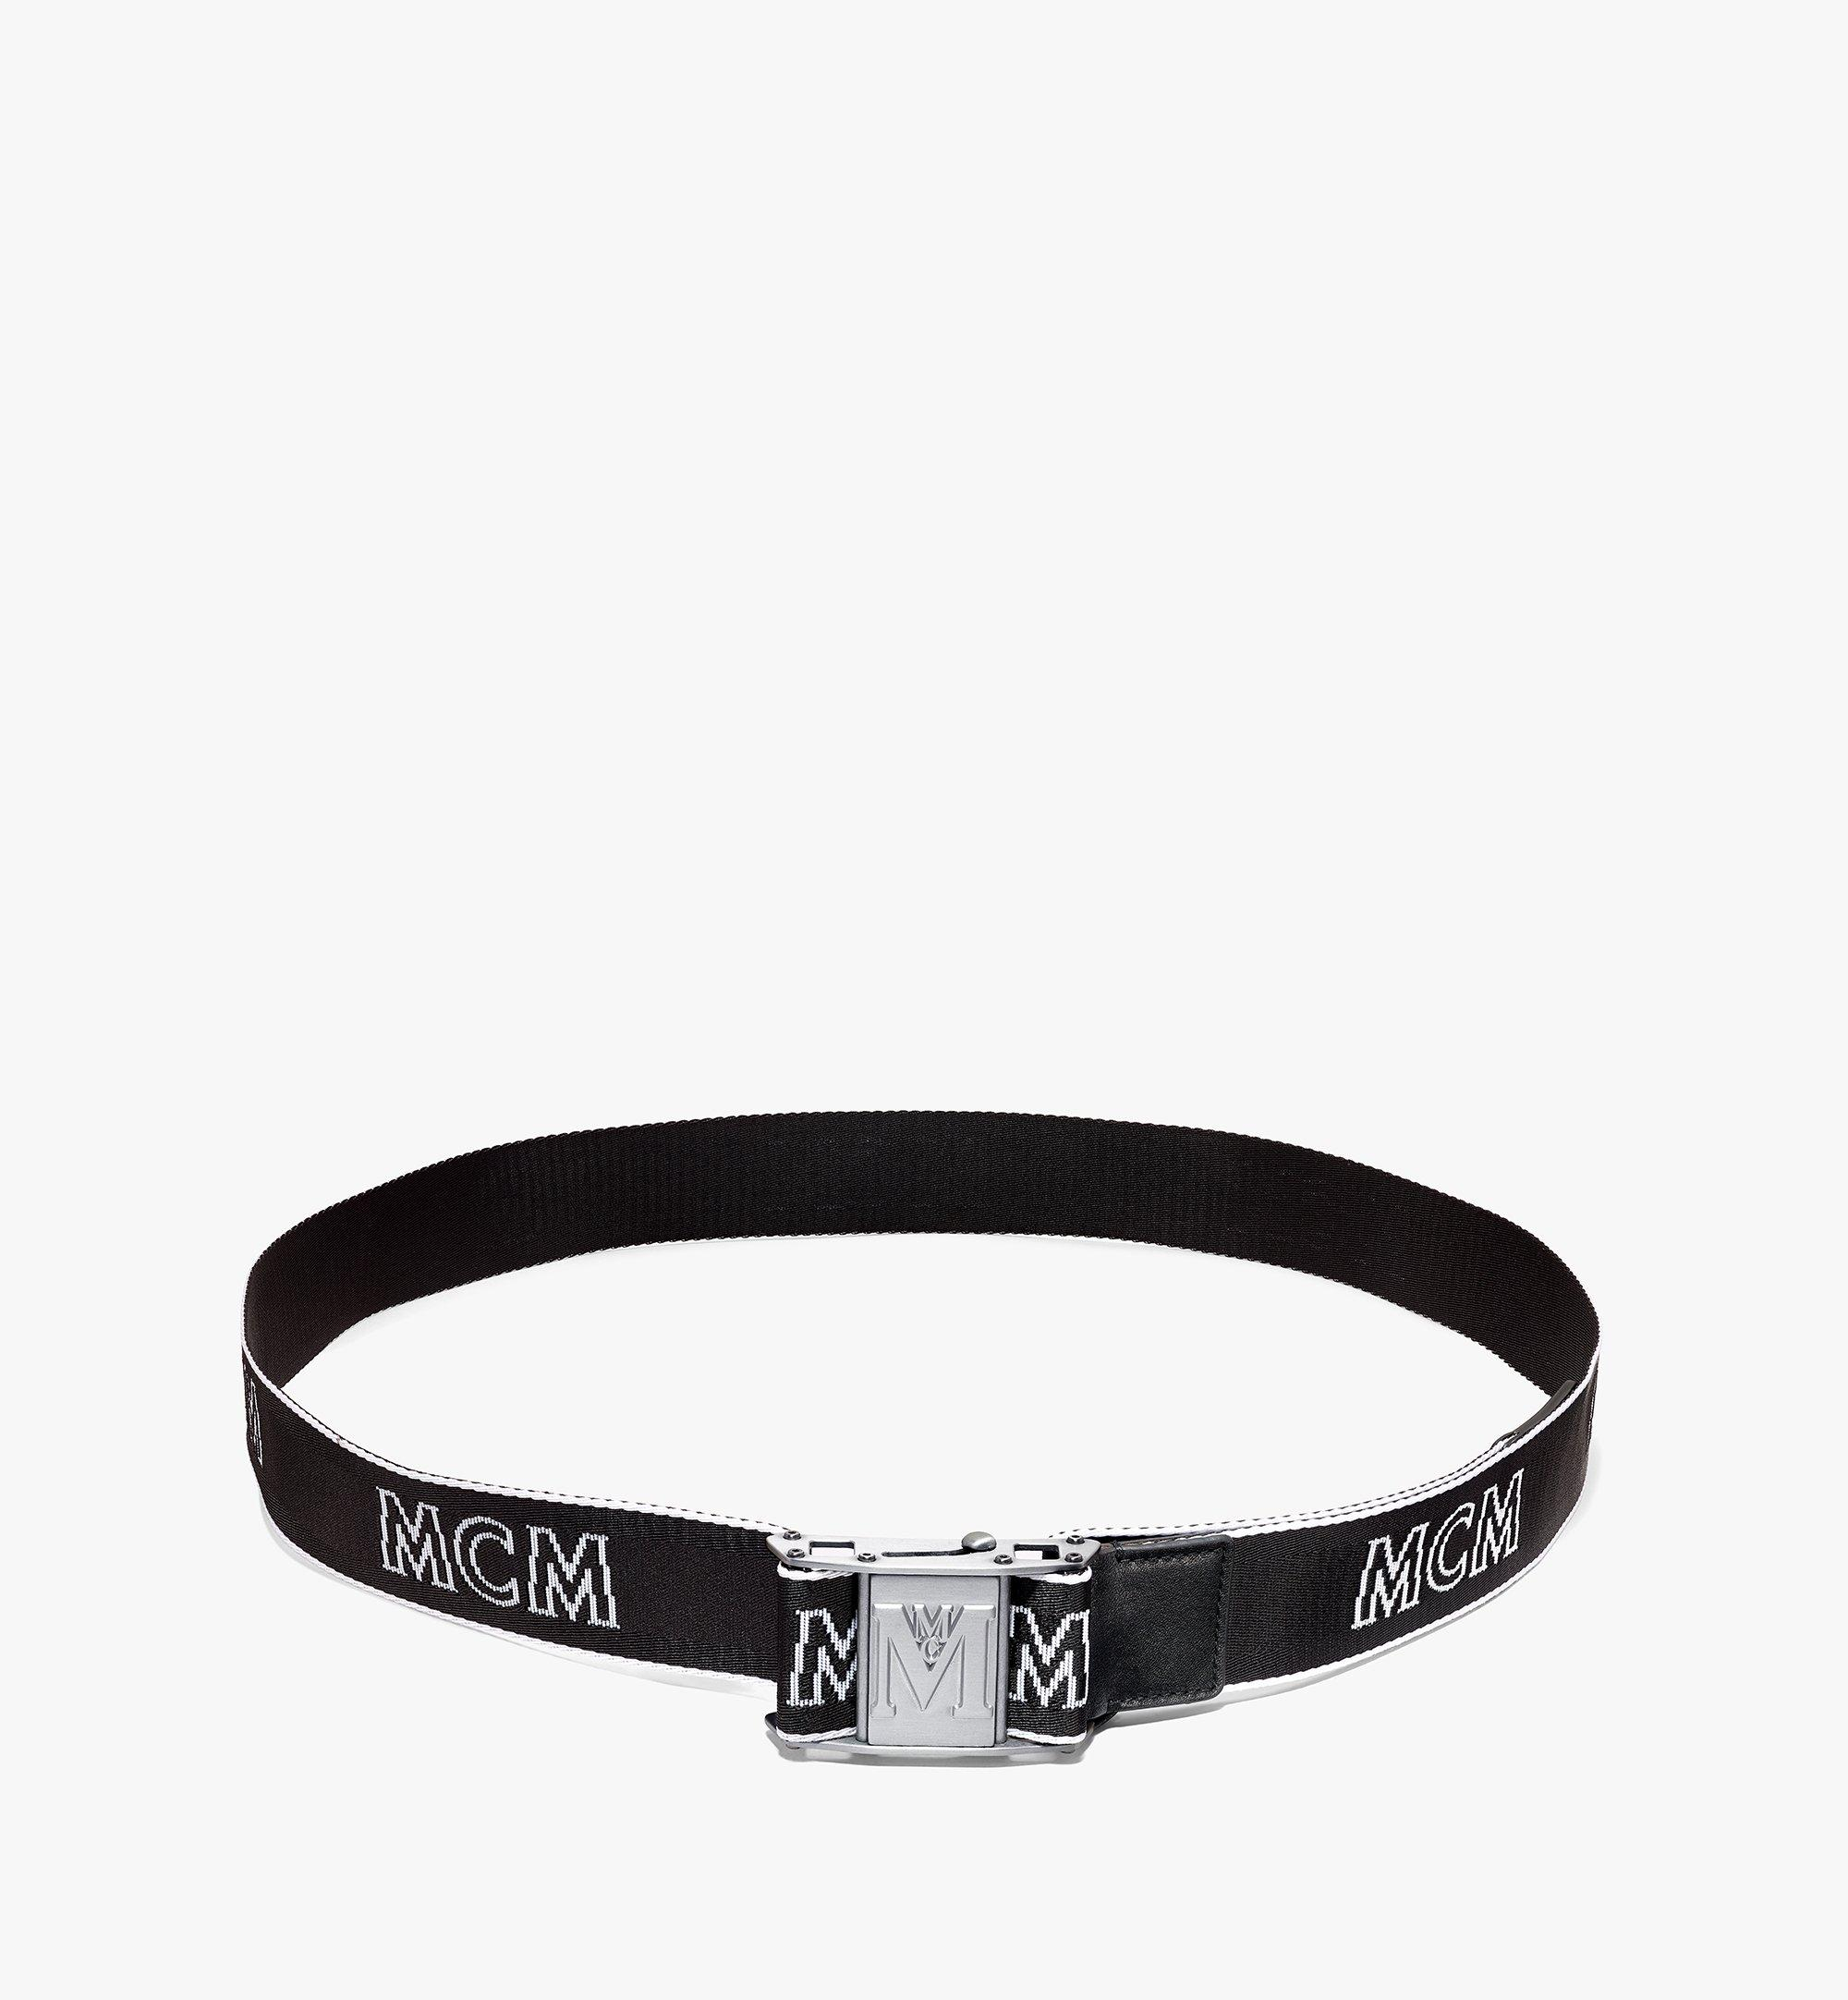 MCM Ceinture en toile à logo industriel 3,8 cm Black MXBAAMM01BK001 Alternate View 2